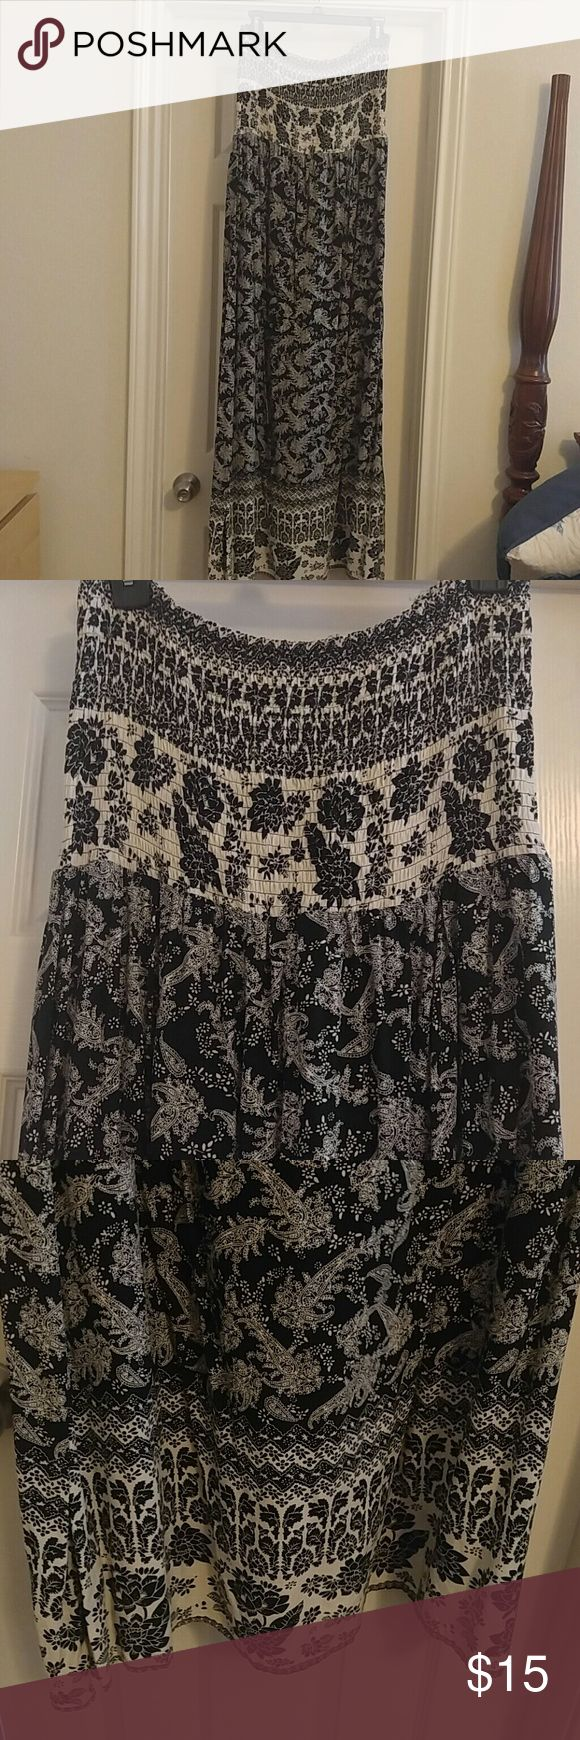 Francescas's strapless maxi in black and cream Worn once black and cream maxi with pretty floral and paisley deaign, smocked top, empire waist with lining size large by francescas Francesca's Collections Dresses Maxi